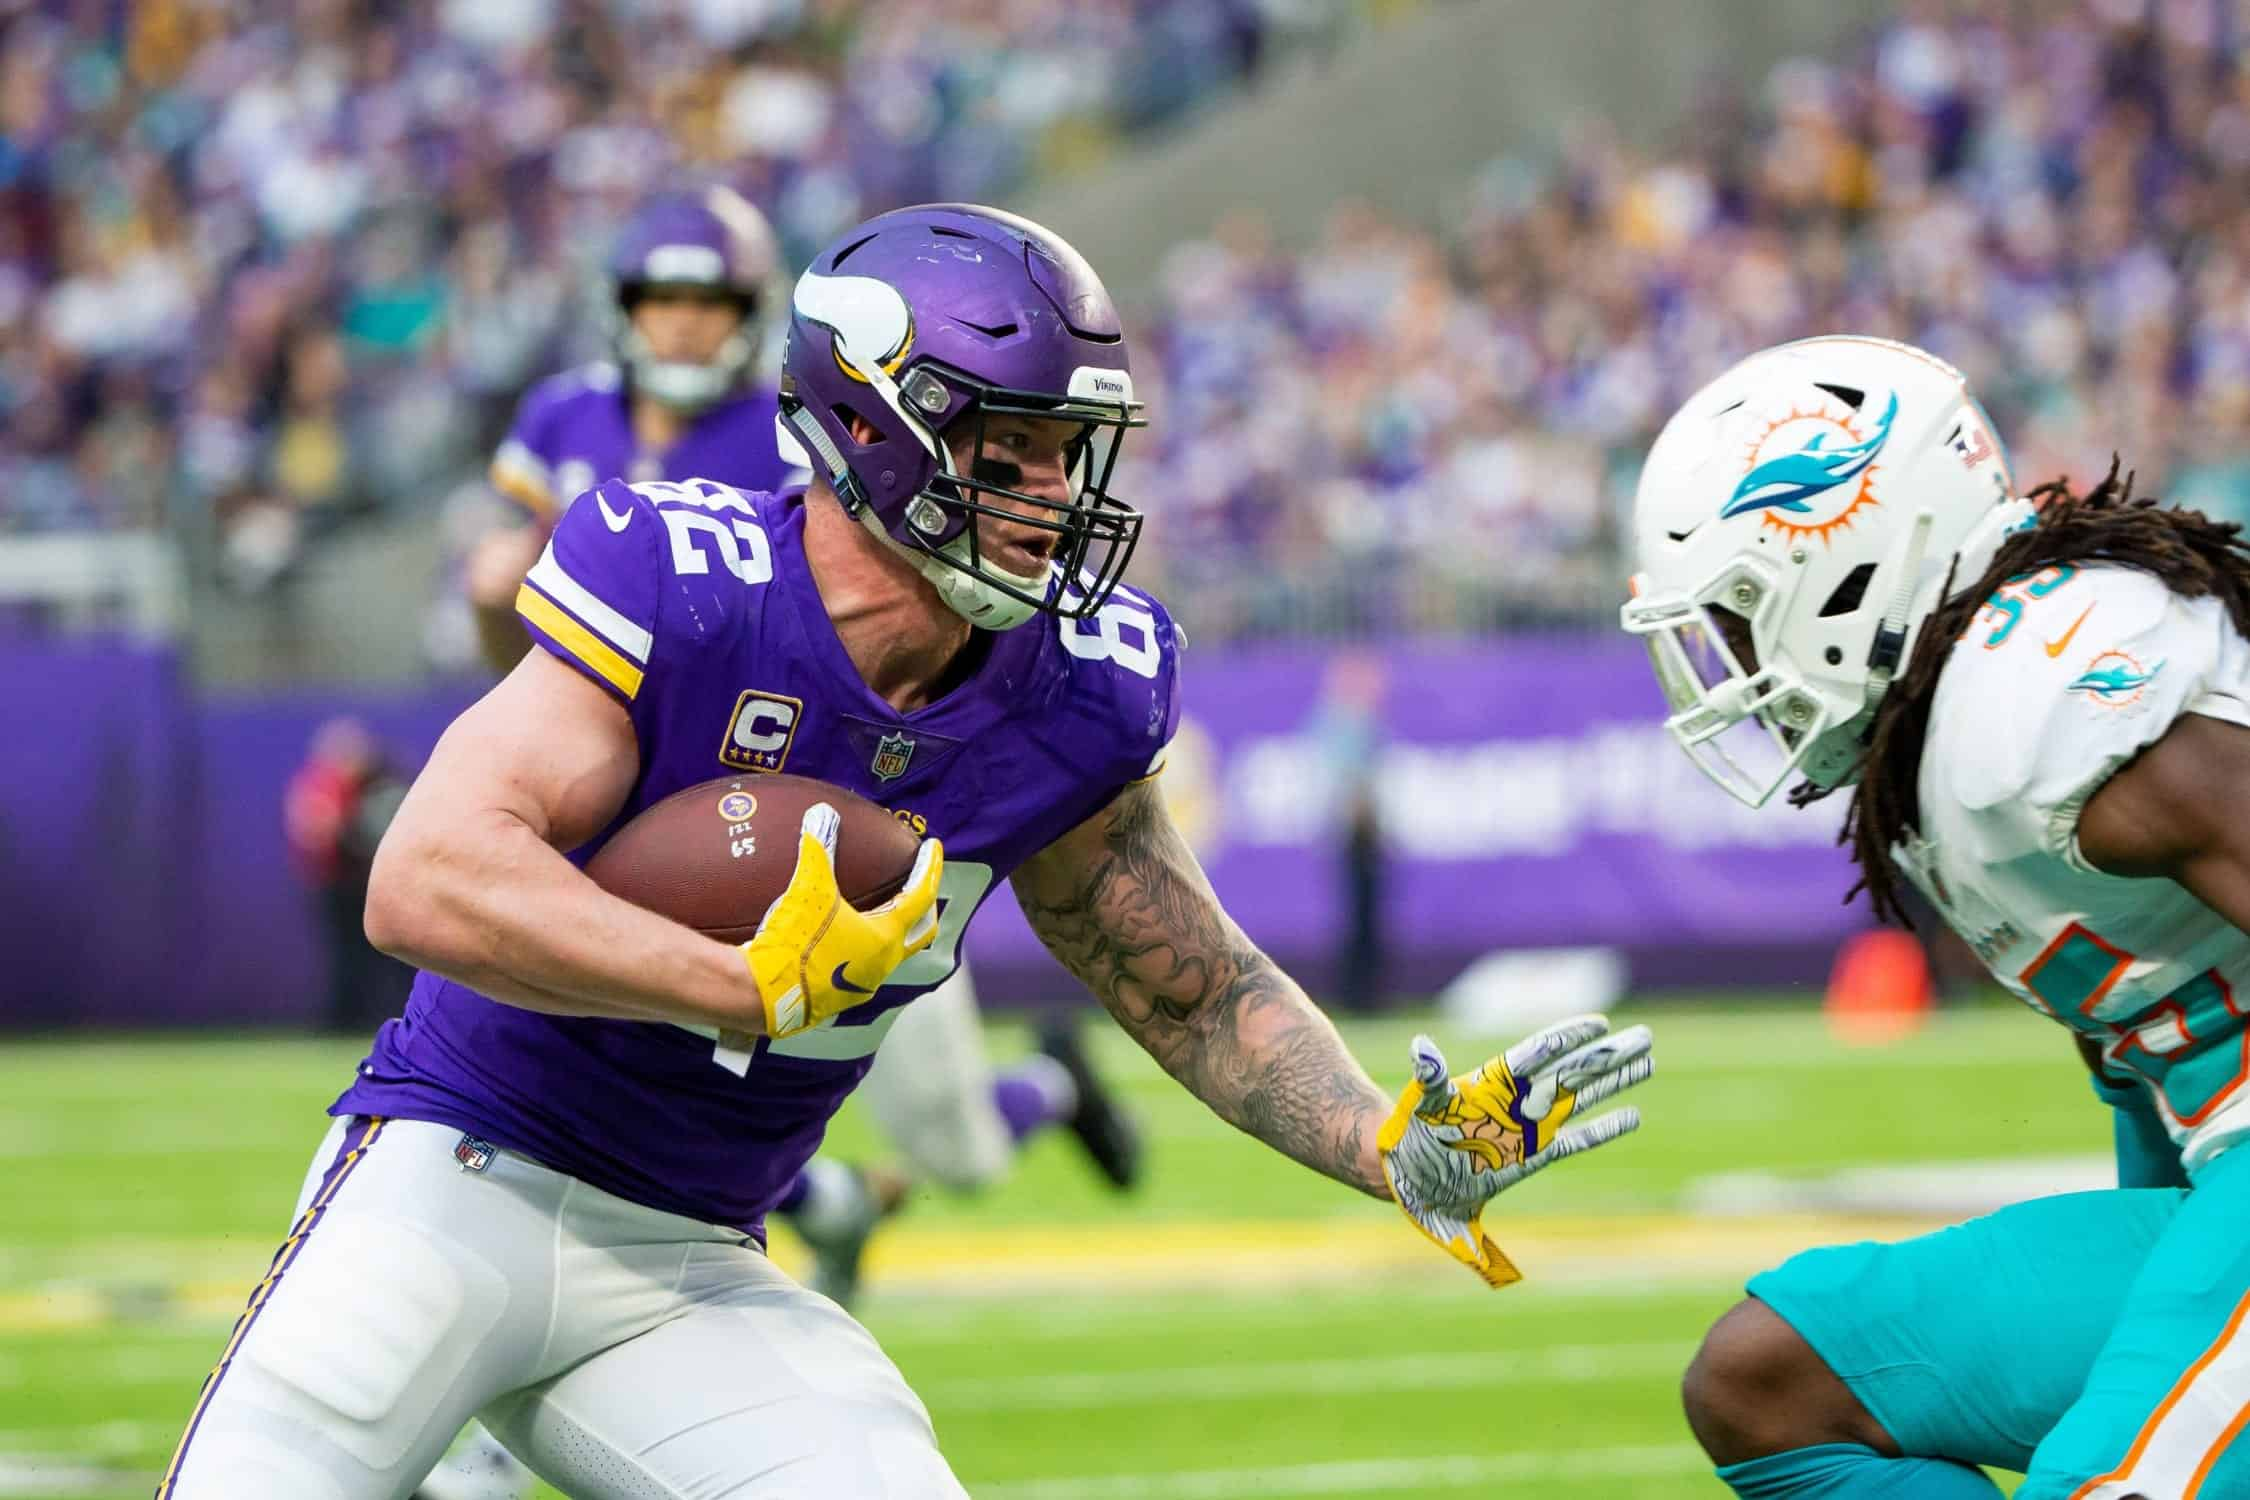 Patriots have had discussions with Vikings about Kyle Rudolph